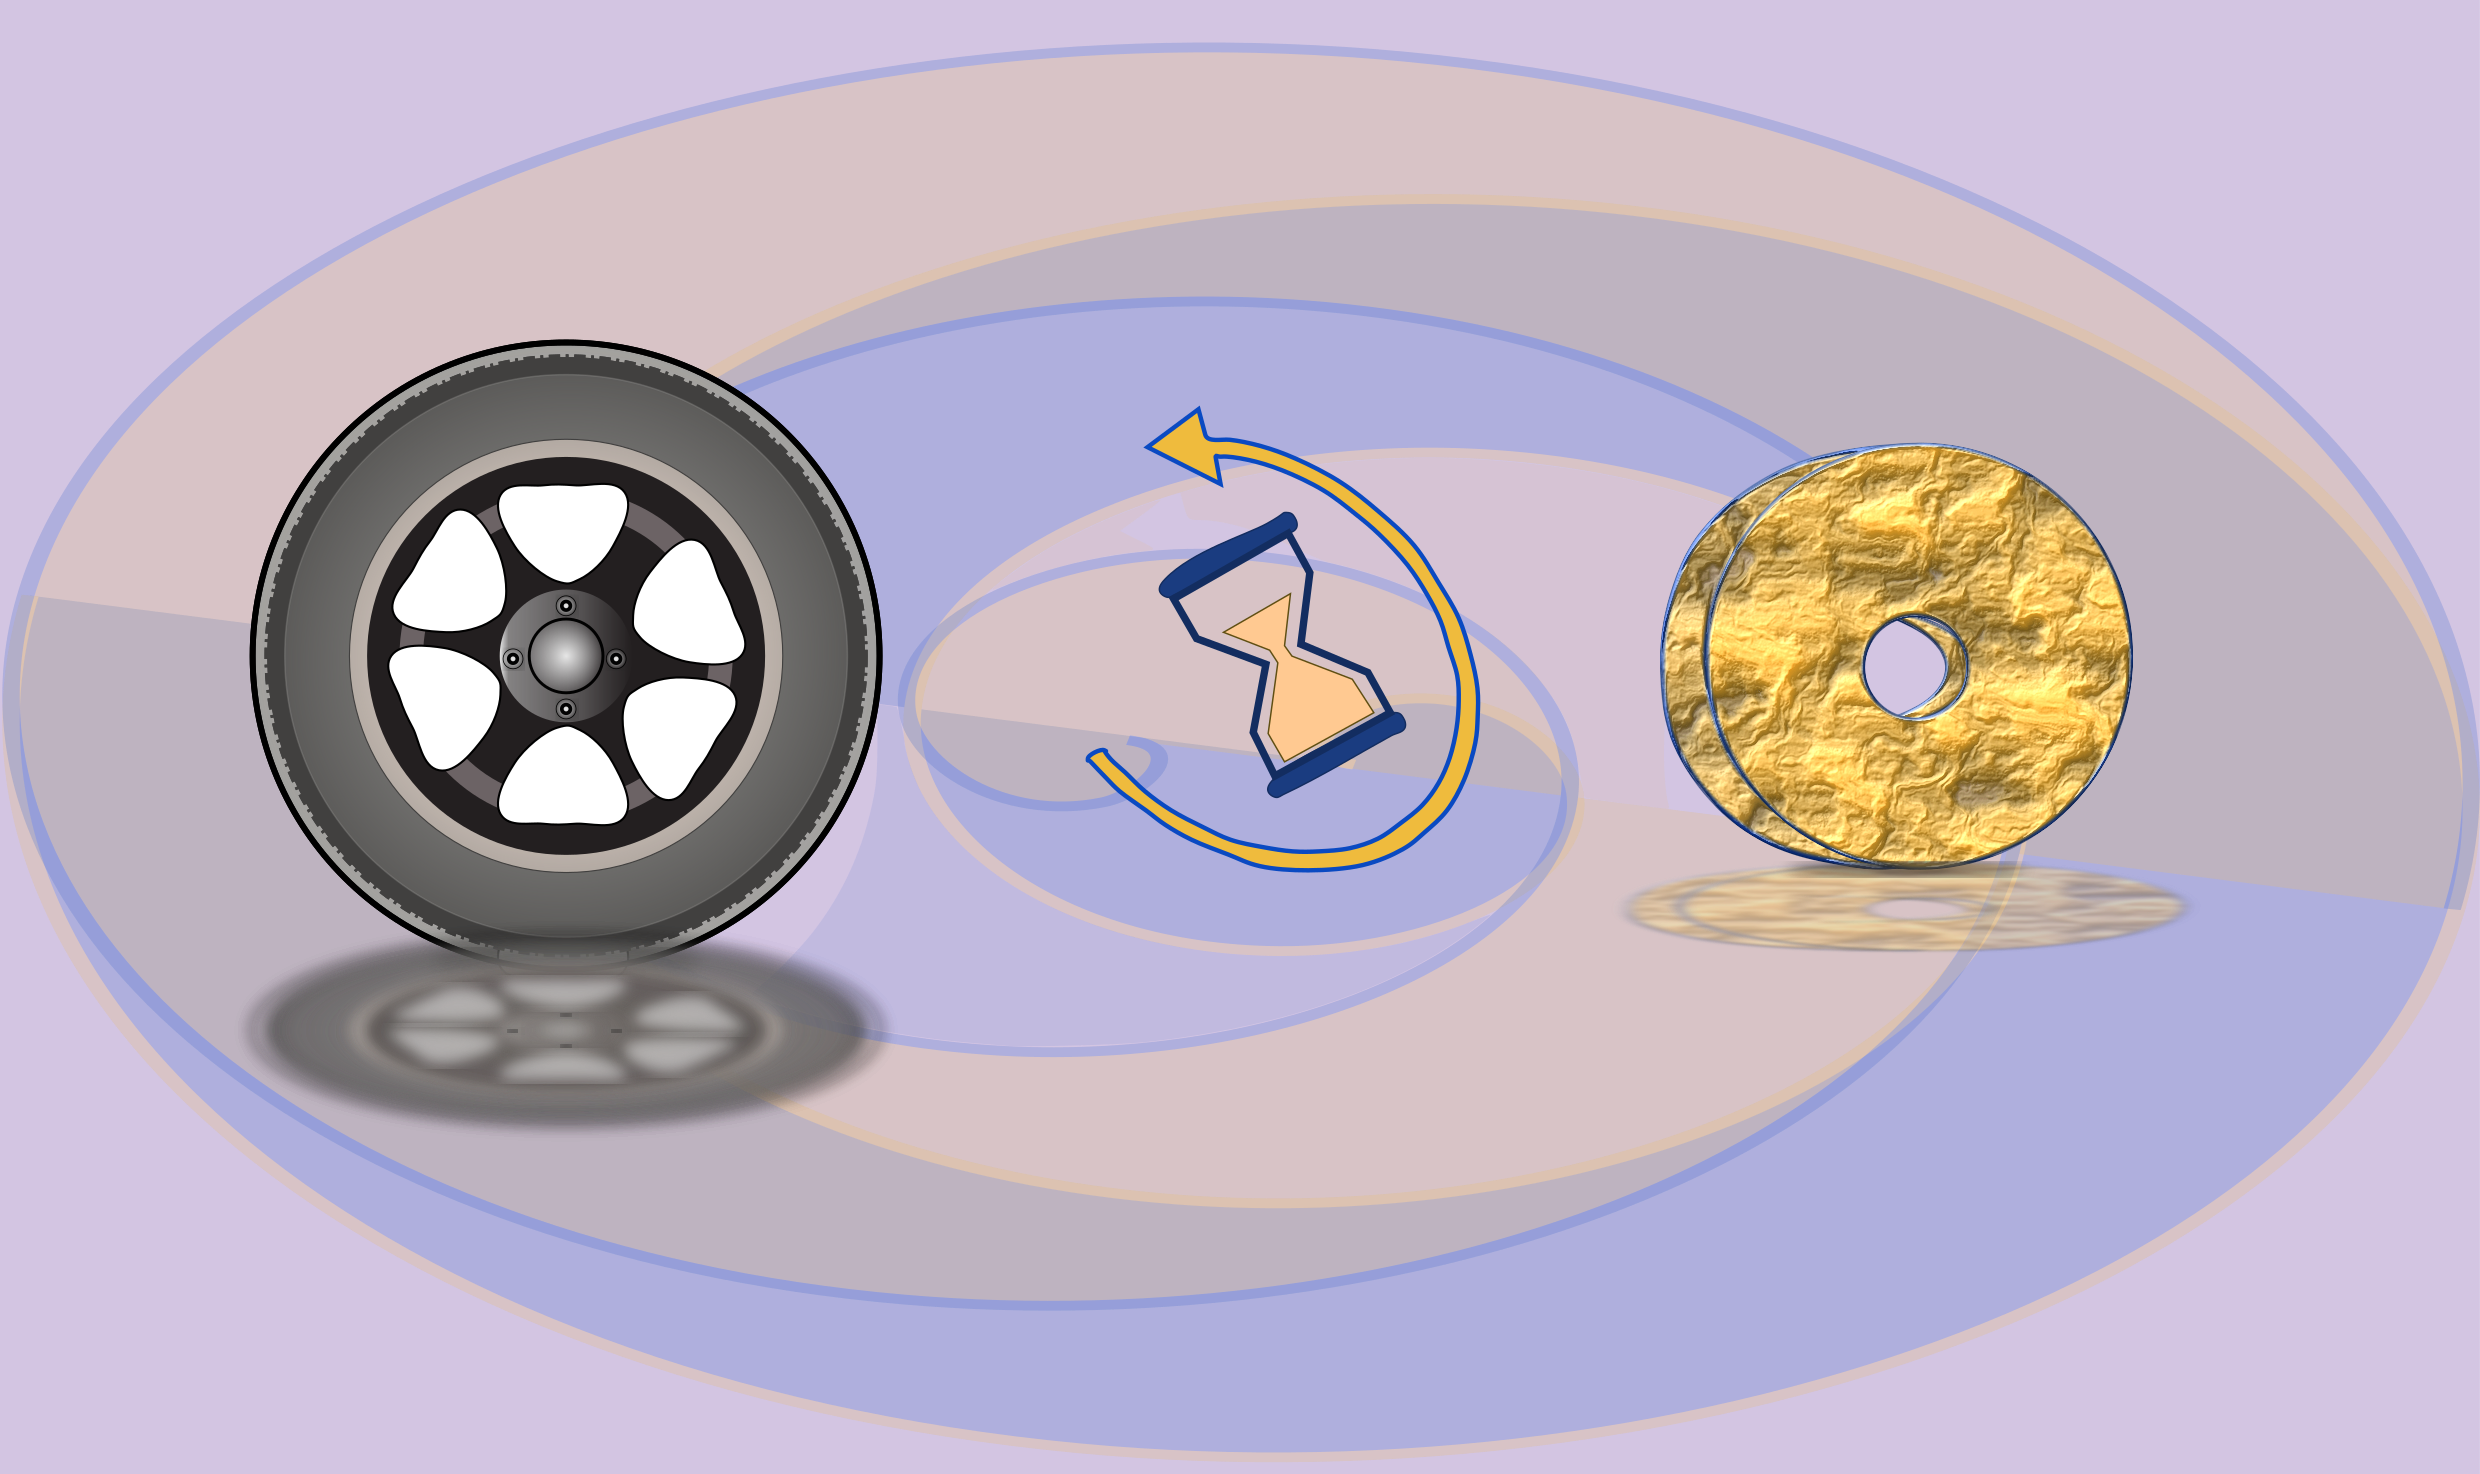 Wheel clipart time wheel. Journal of unsolved questions